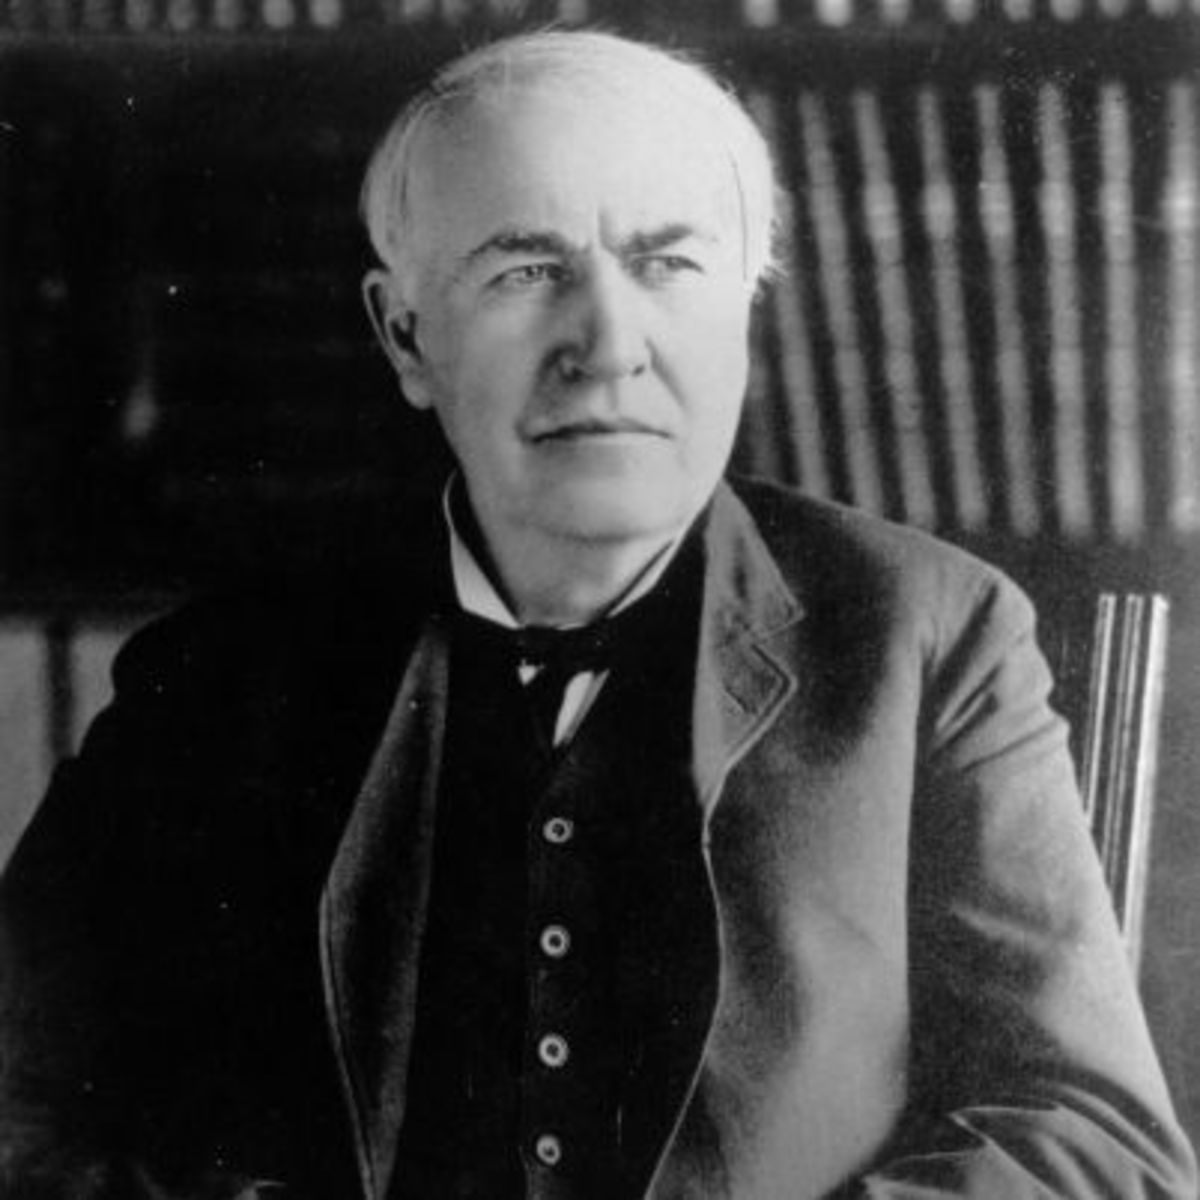 thomas edison was an inventor who had invented many things such as a group of business savvy innovative young men john d rockefeller cornelius vanderbilt andrew carnegie henry ford j p morgan and thomas edison